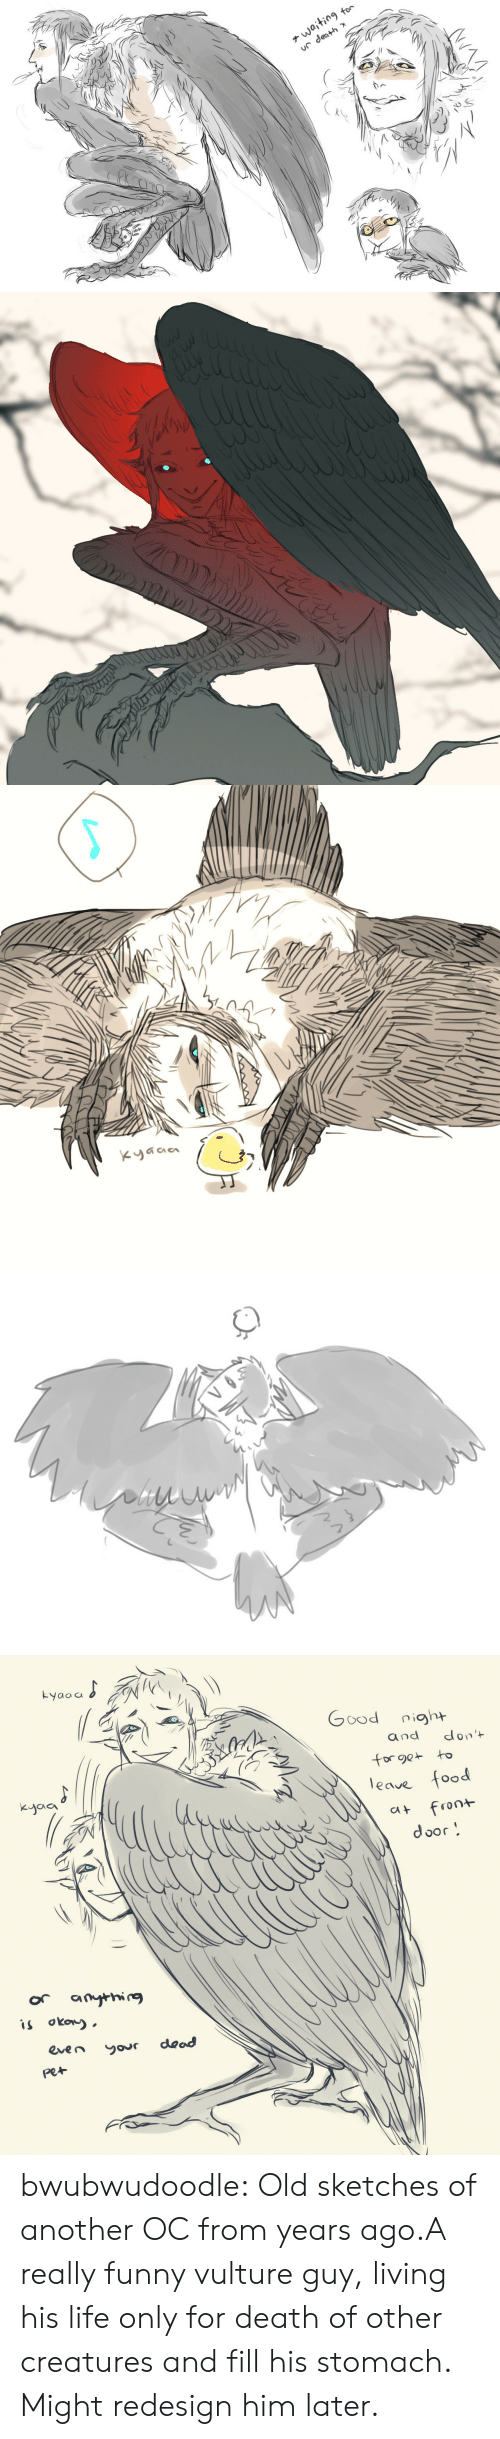 Food, Funny, and Life: waiting  for  ur death *  ale   KyGaa   Lyaoa  tyolu poo  don't  and  for ge to  leaue food  Kyaa  front  CAt  door  or  anythig  is okow  dead  even  your  pet bwubwudoodle:  Old sketches of another OC from years ago.A really funny vulture guy, living his life only for death of other creatures and fill his stomach. Might redesign him later.